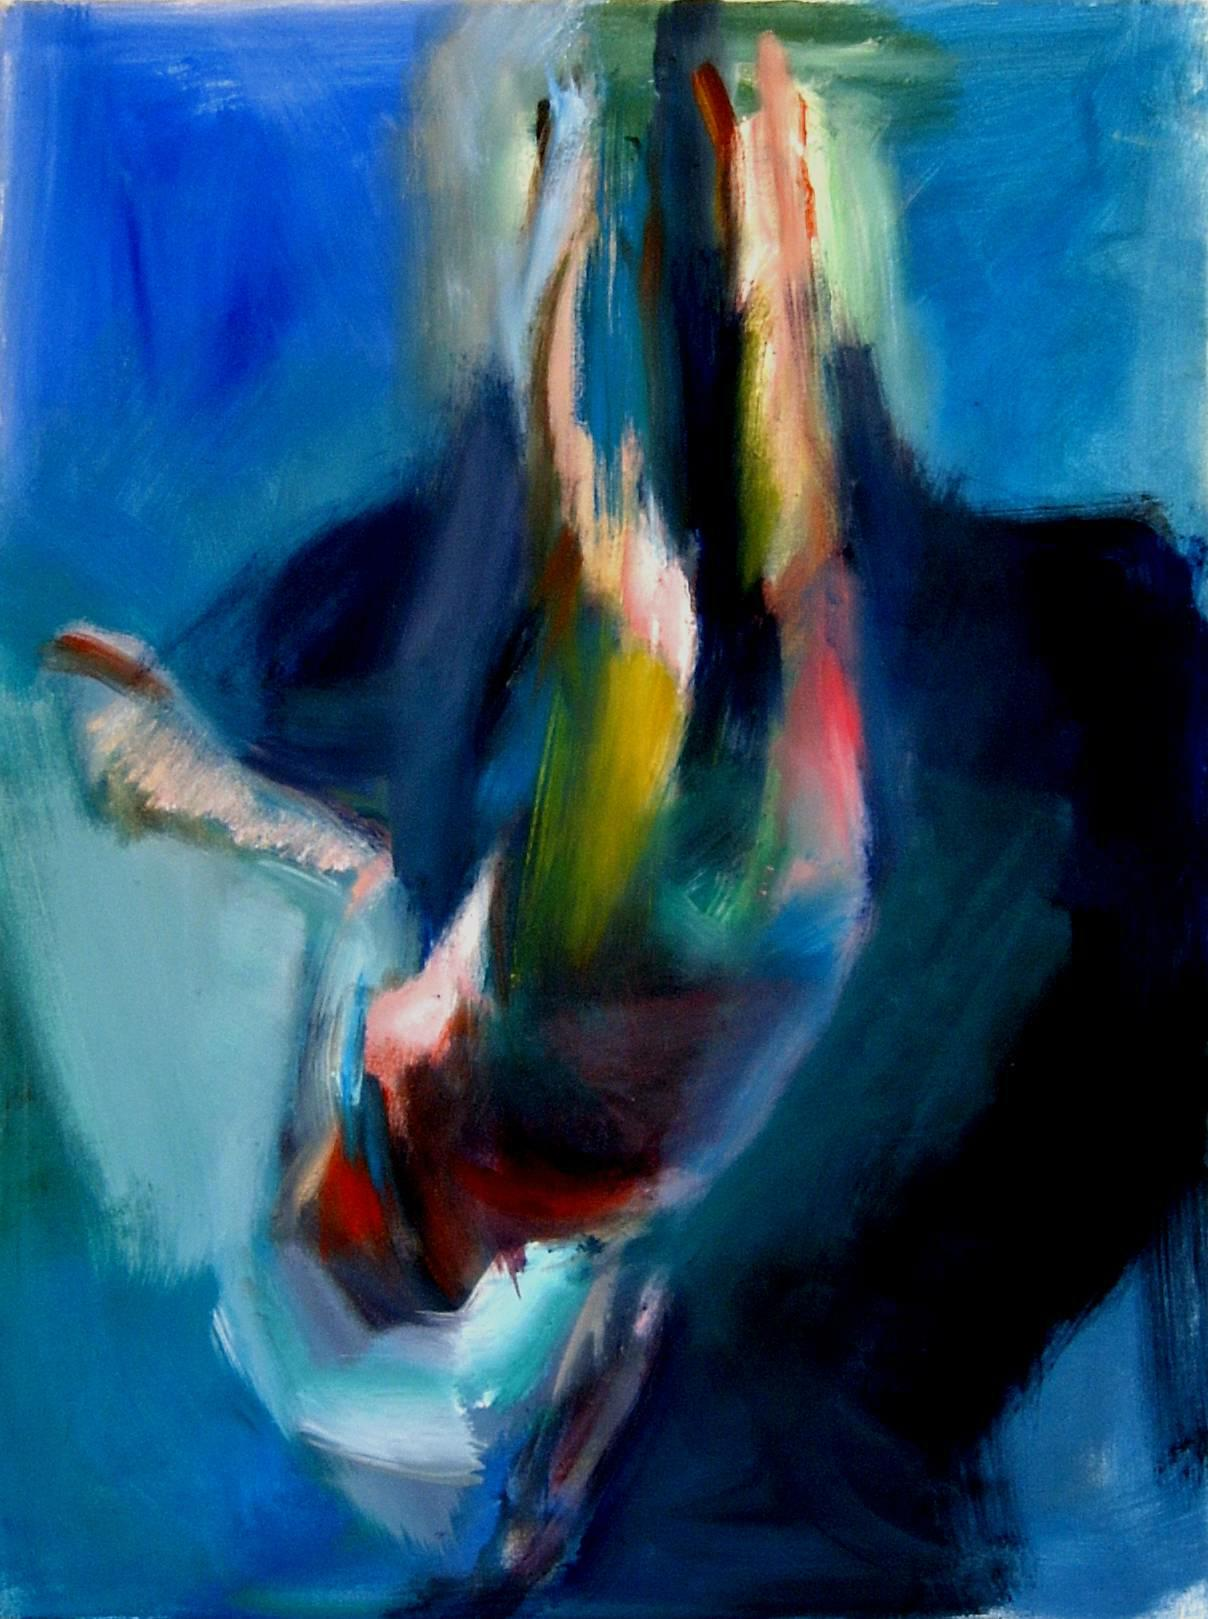 B.Böhlke, At the Pools, 2009, Oil on Canvas, 100x75cm